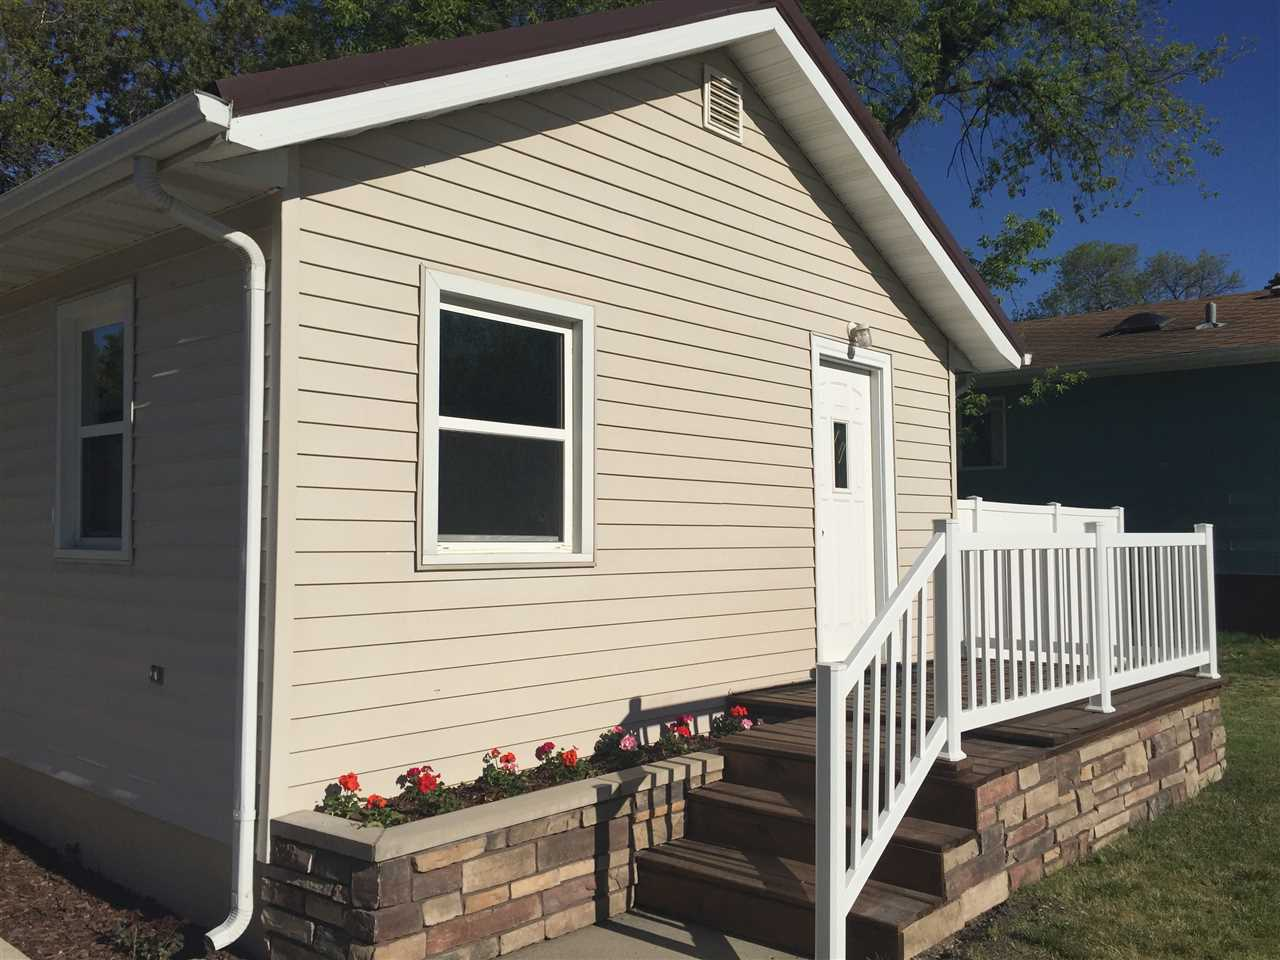 419 NW 20th St, Minot, ND 58703